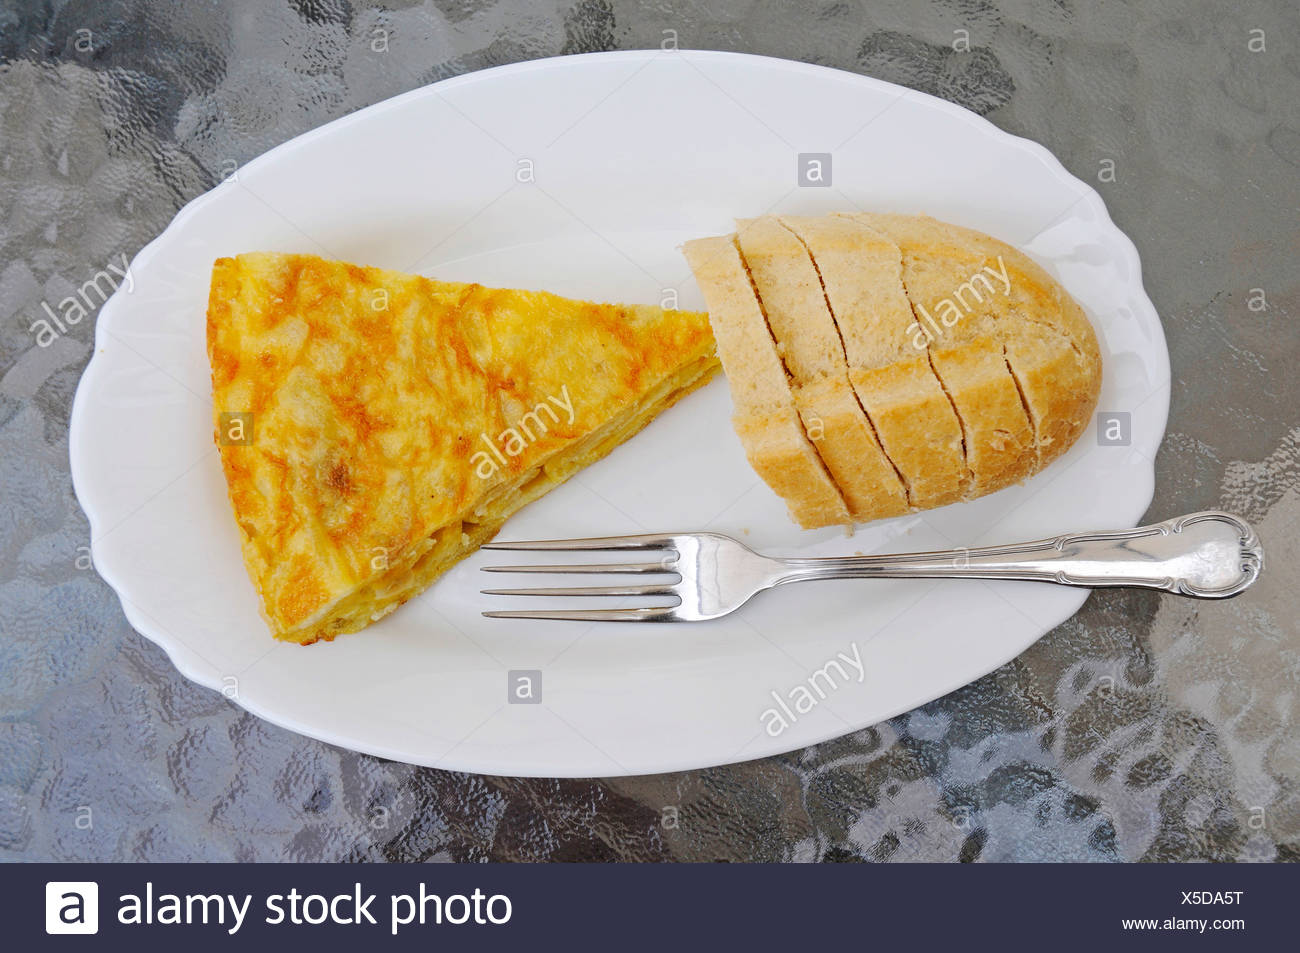 Spanish tortilla, potato dish, bread, plates, forks, Tapas, Javea, Xabia, Costa Blanca, Alicante, Spain, Europe - Stock Image